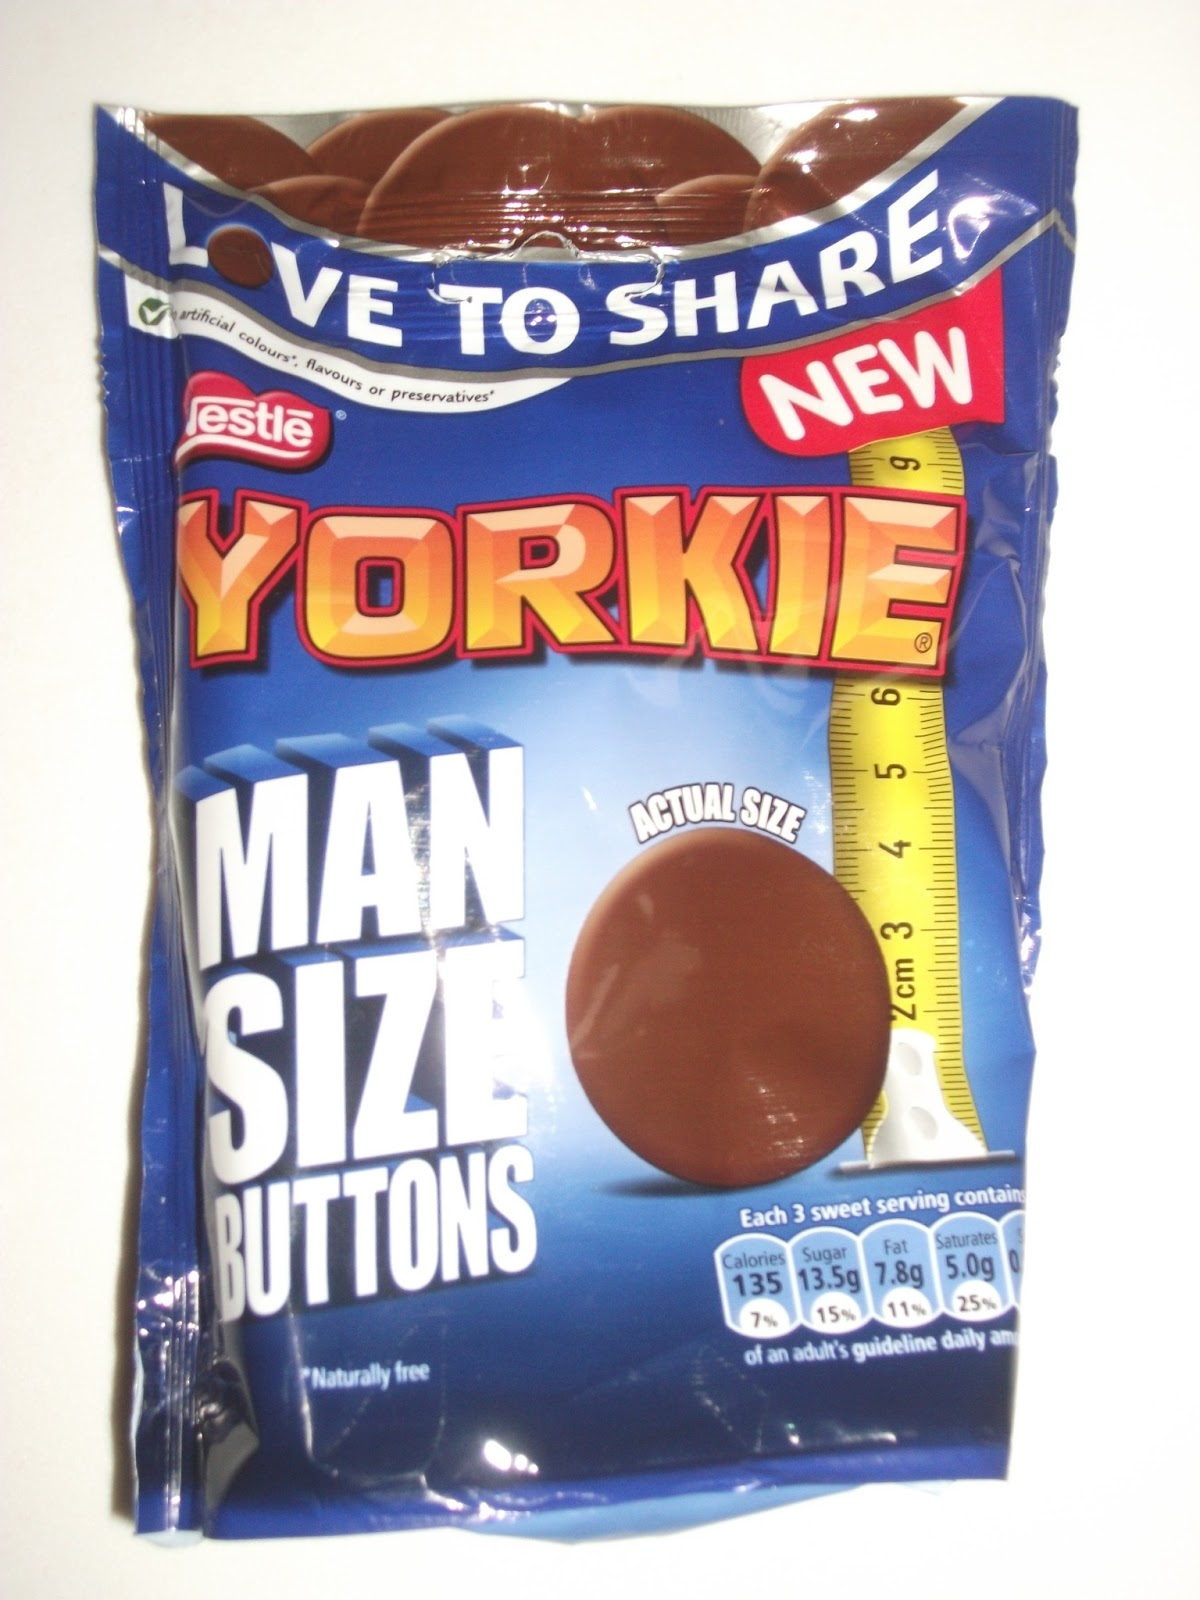 Yorkie Man Size Buttons